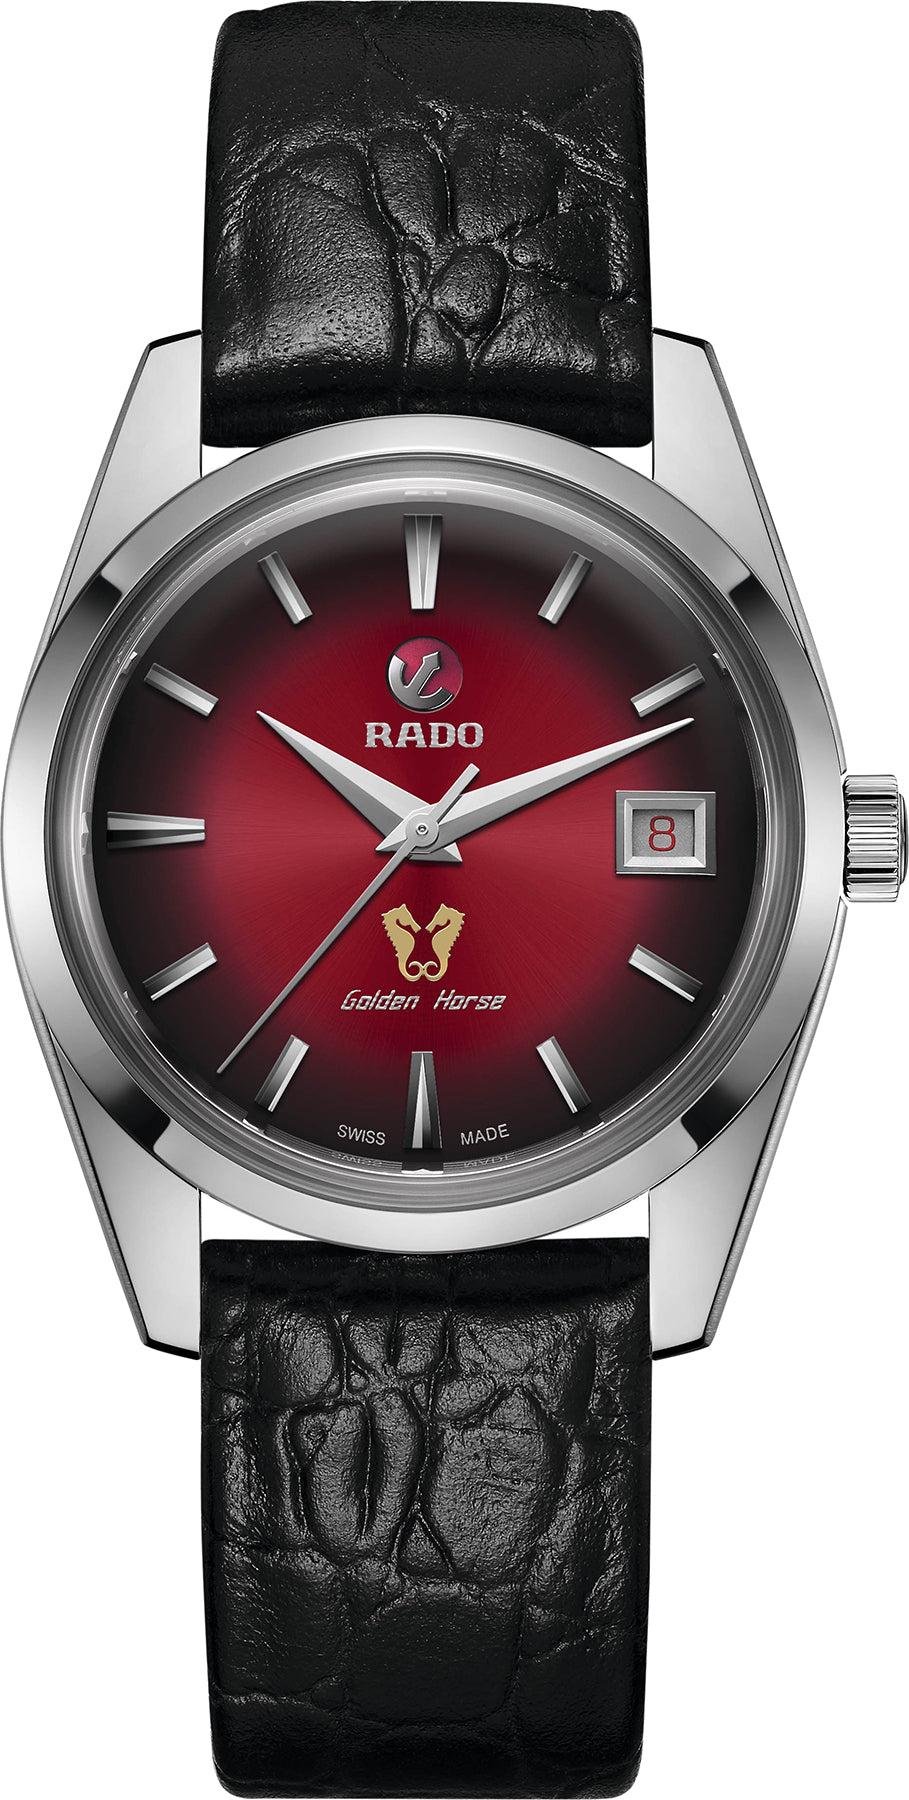 Rado Watch Golden Horse 1957 Automatic Limited Edition